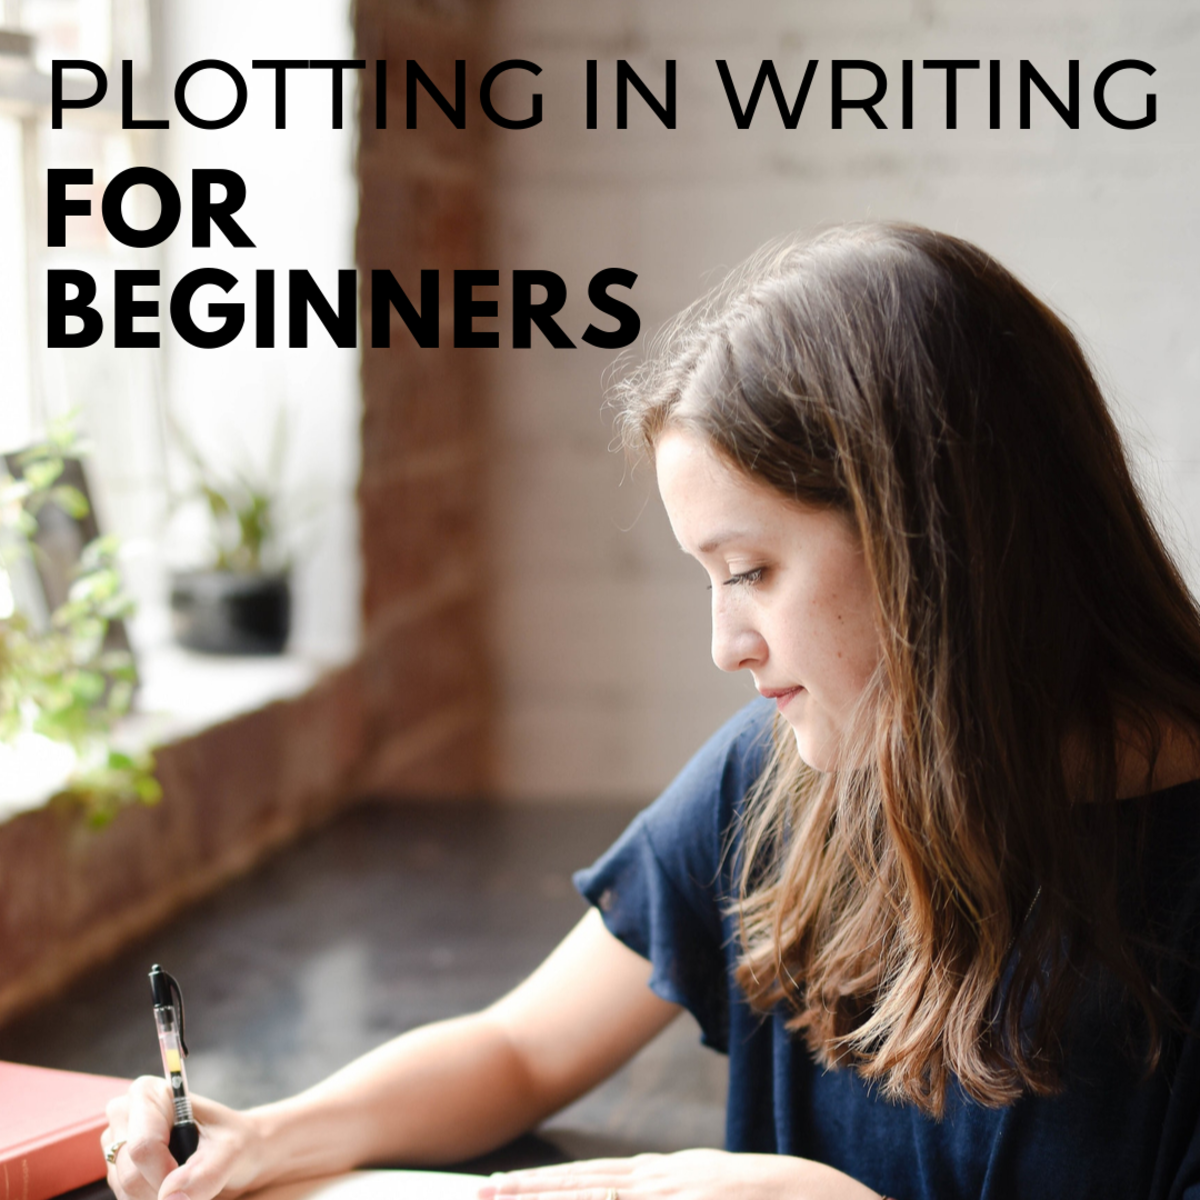 Plotting for Beginners